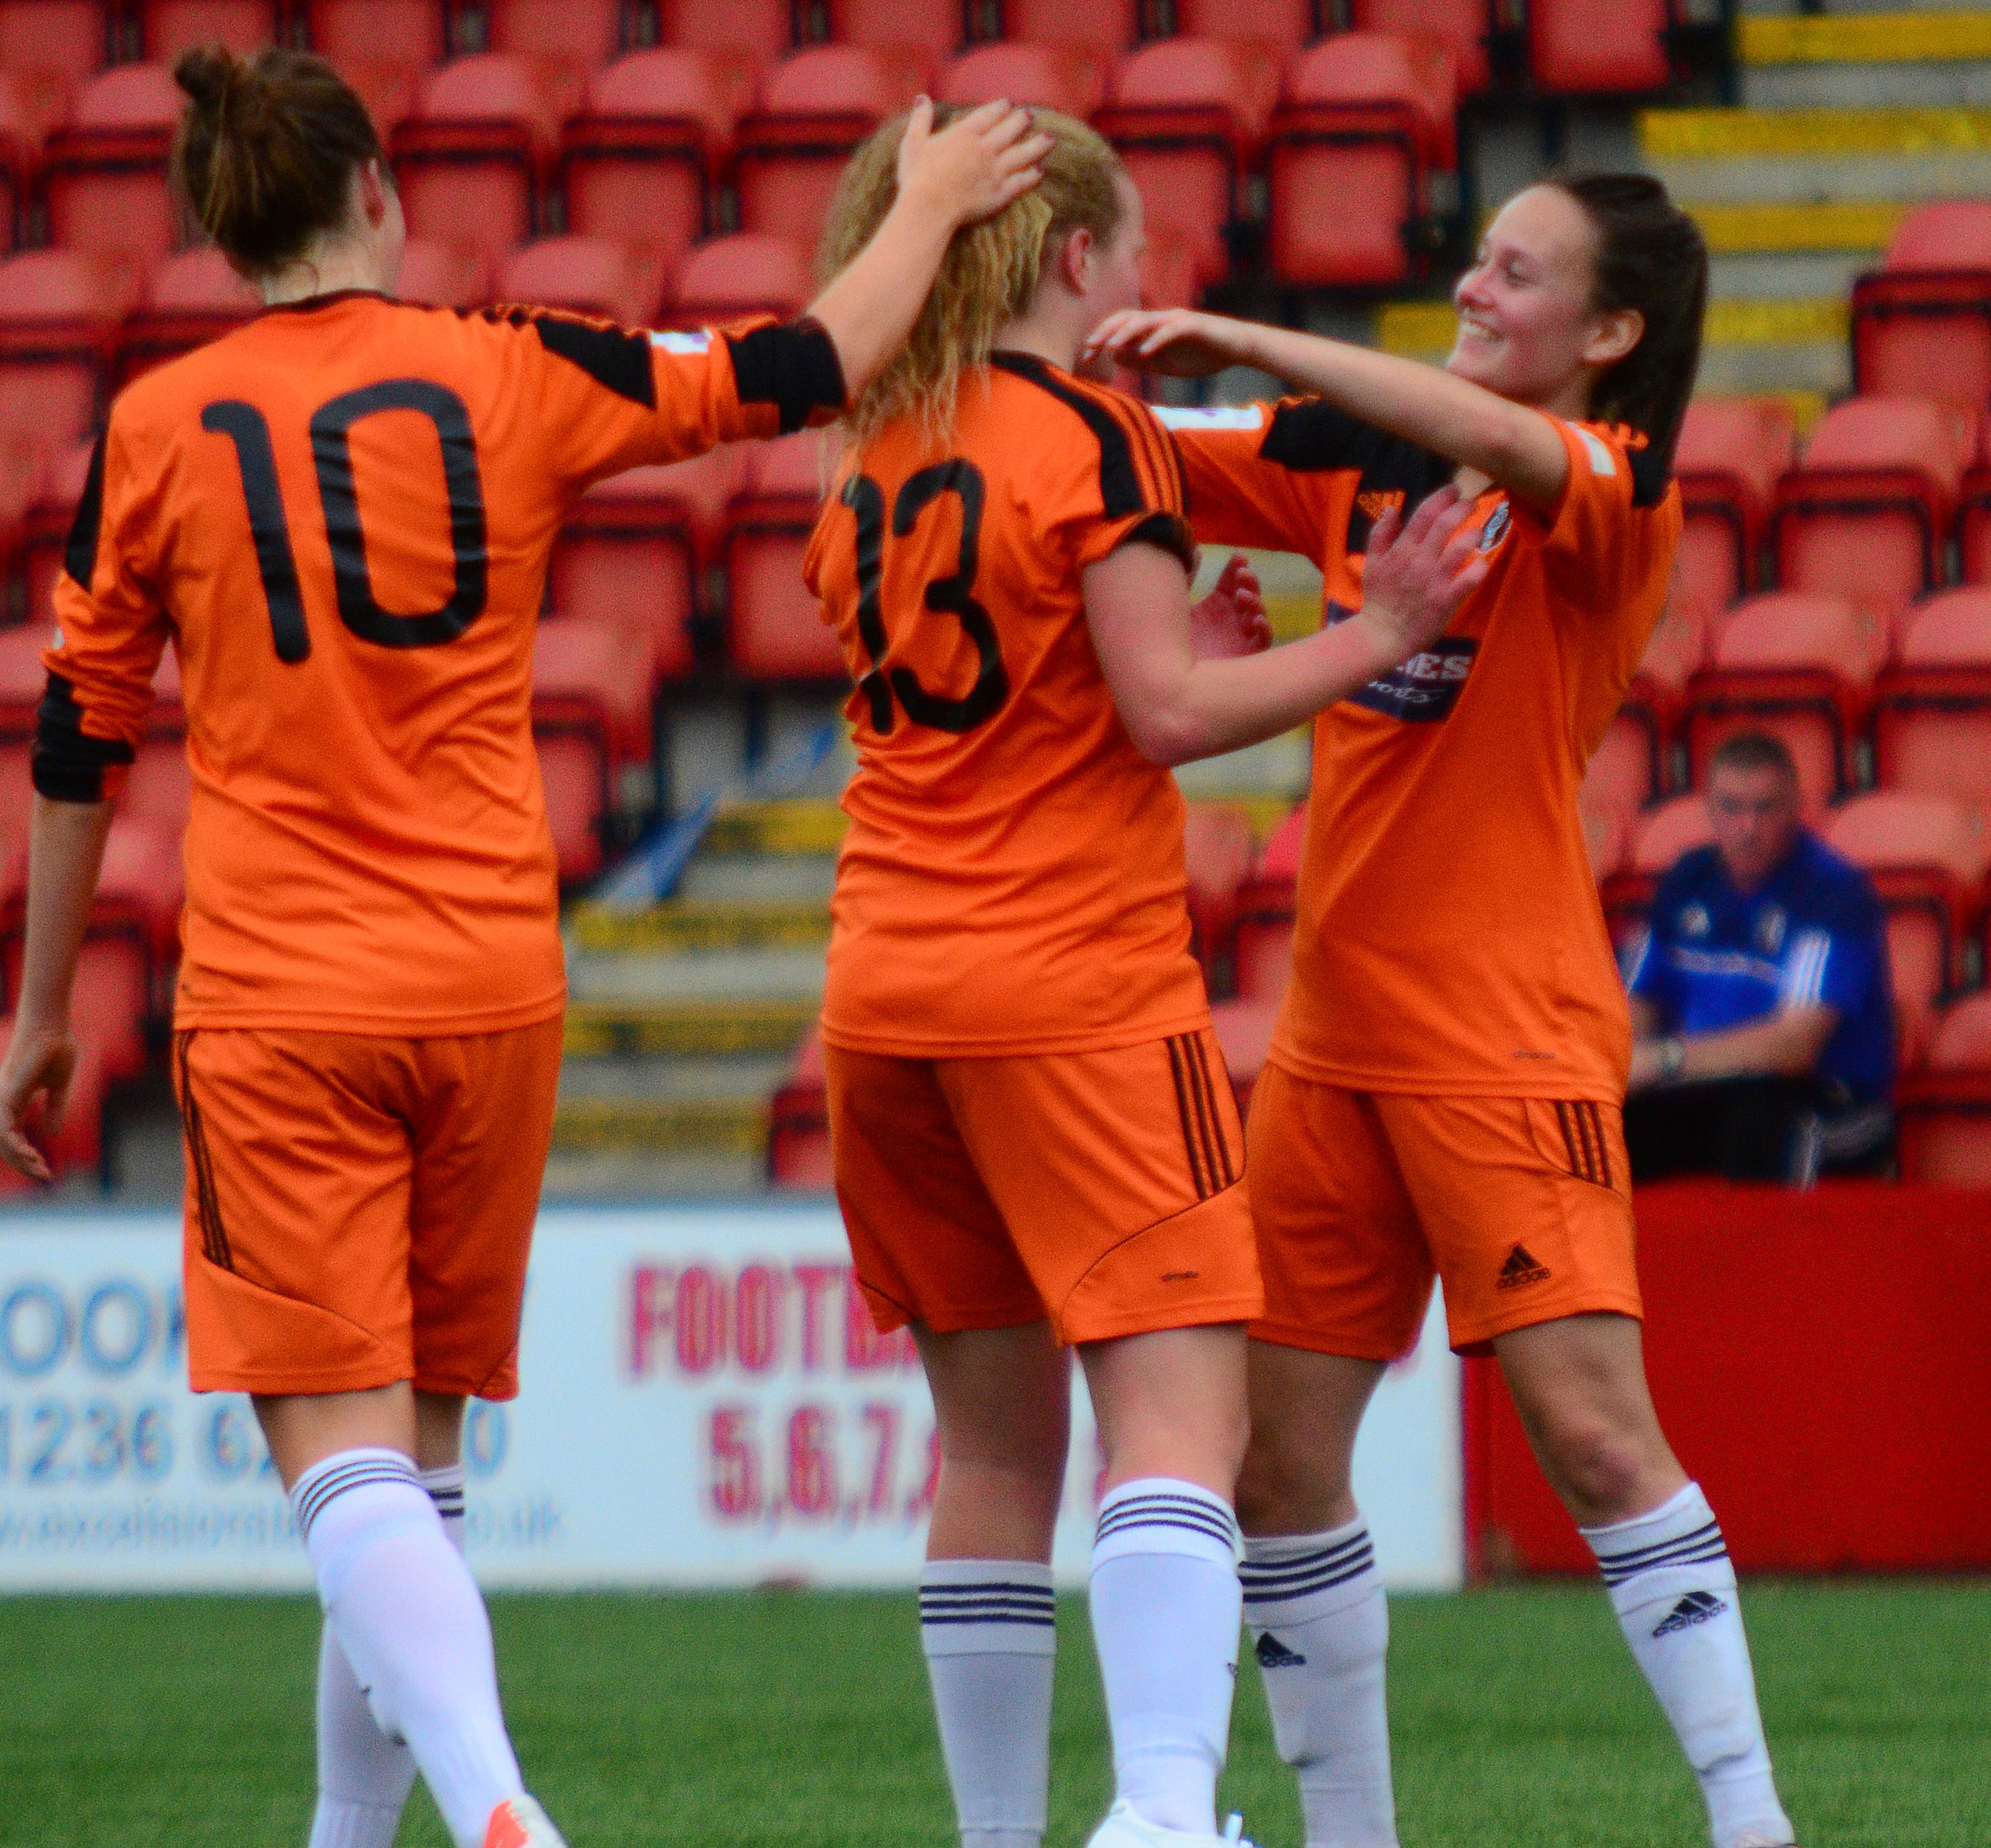 Courtney Whyte & Abbi Grant Celebrate. Image by Graeme Berry